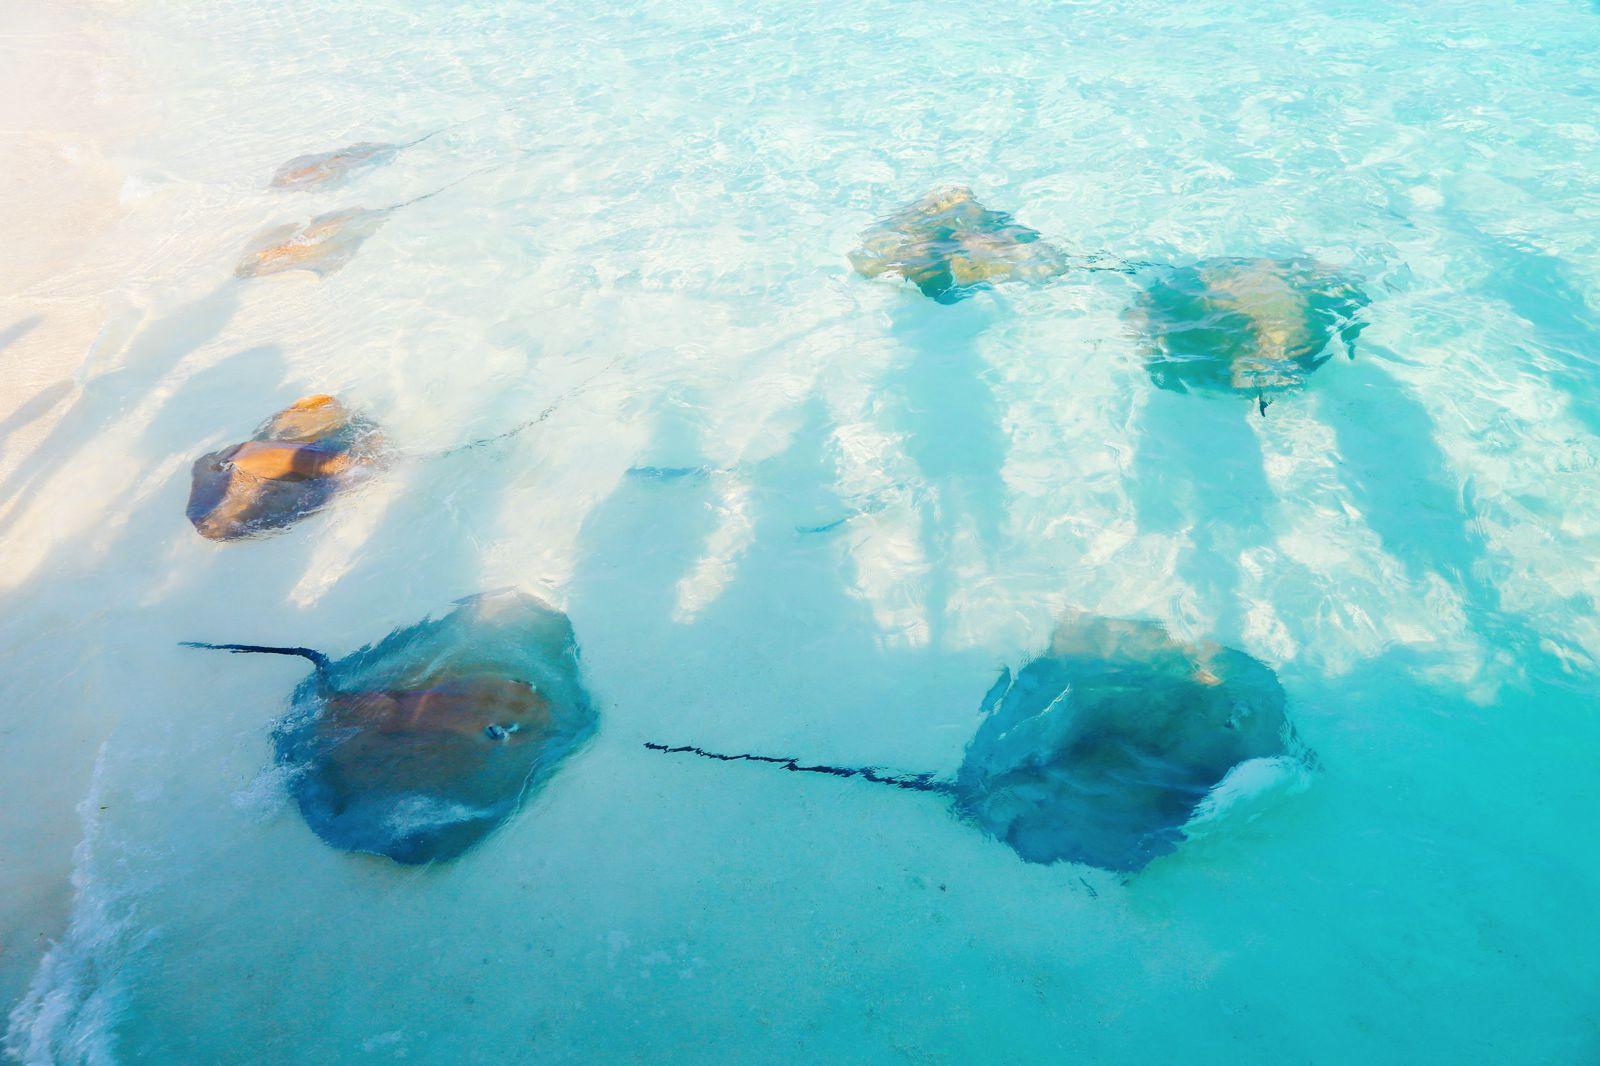 Swimming With Sharks, Turtles, Clownfish And Stingrays In The Maldives (45)